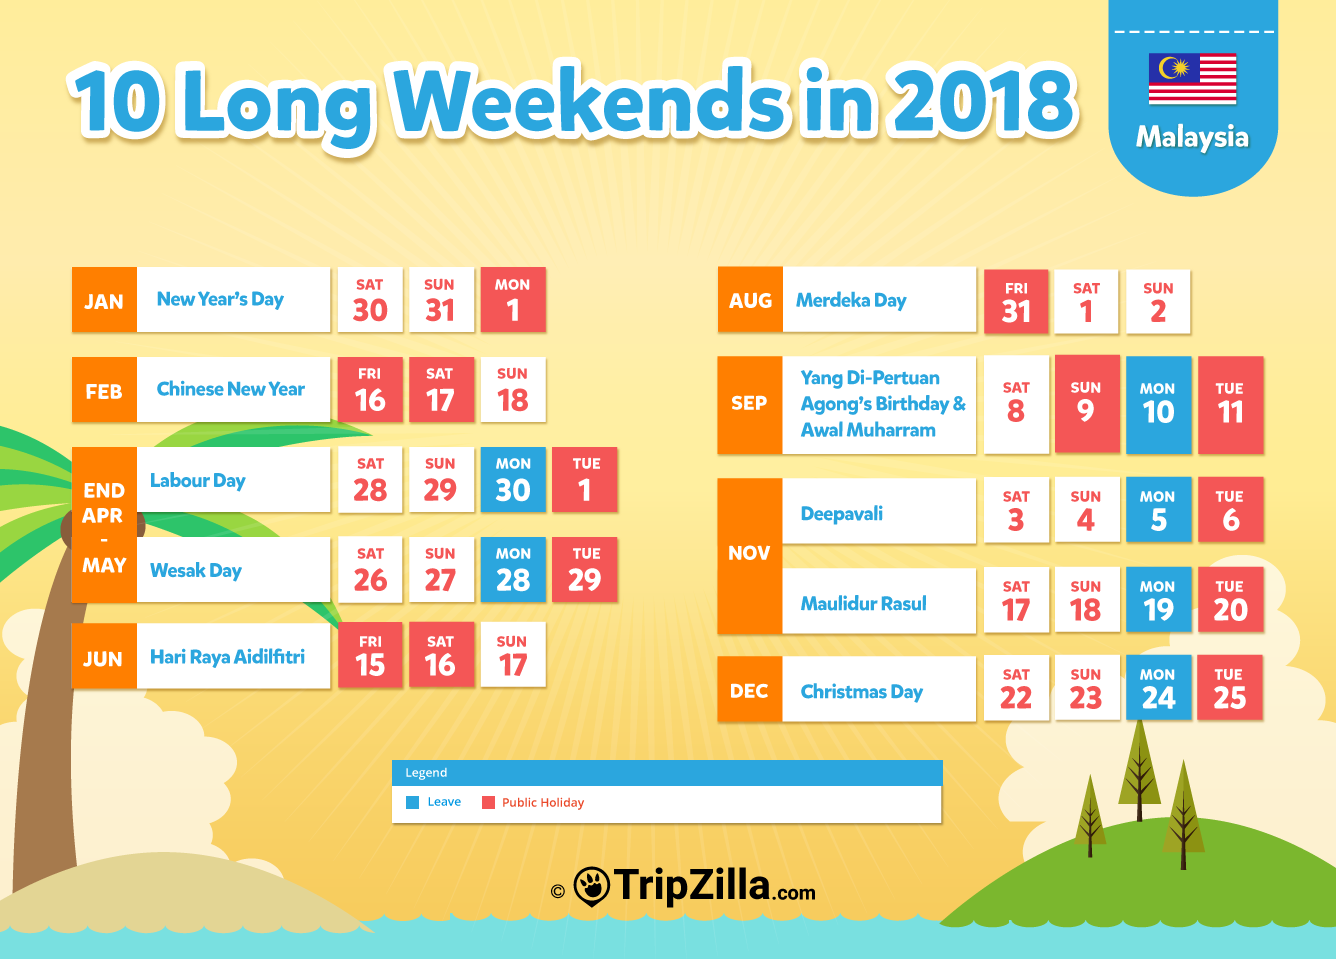 10 Long Weekends In Malaysia In 2018